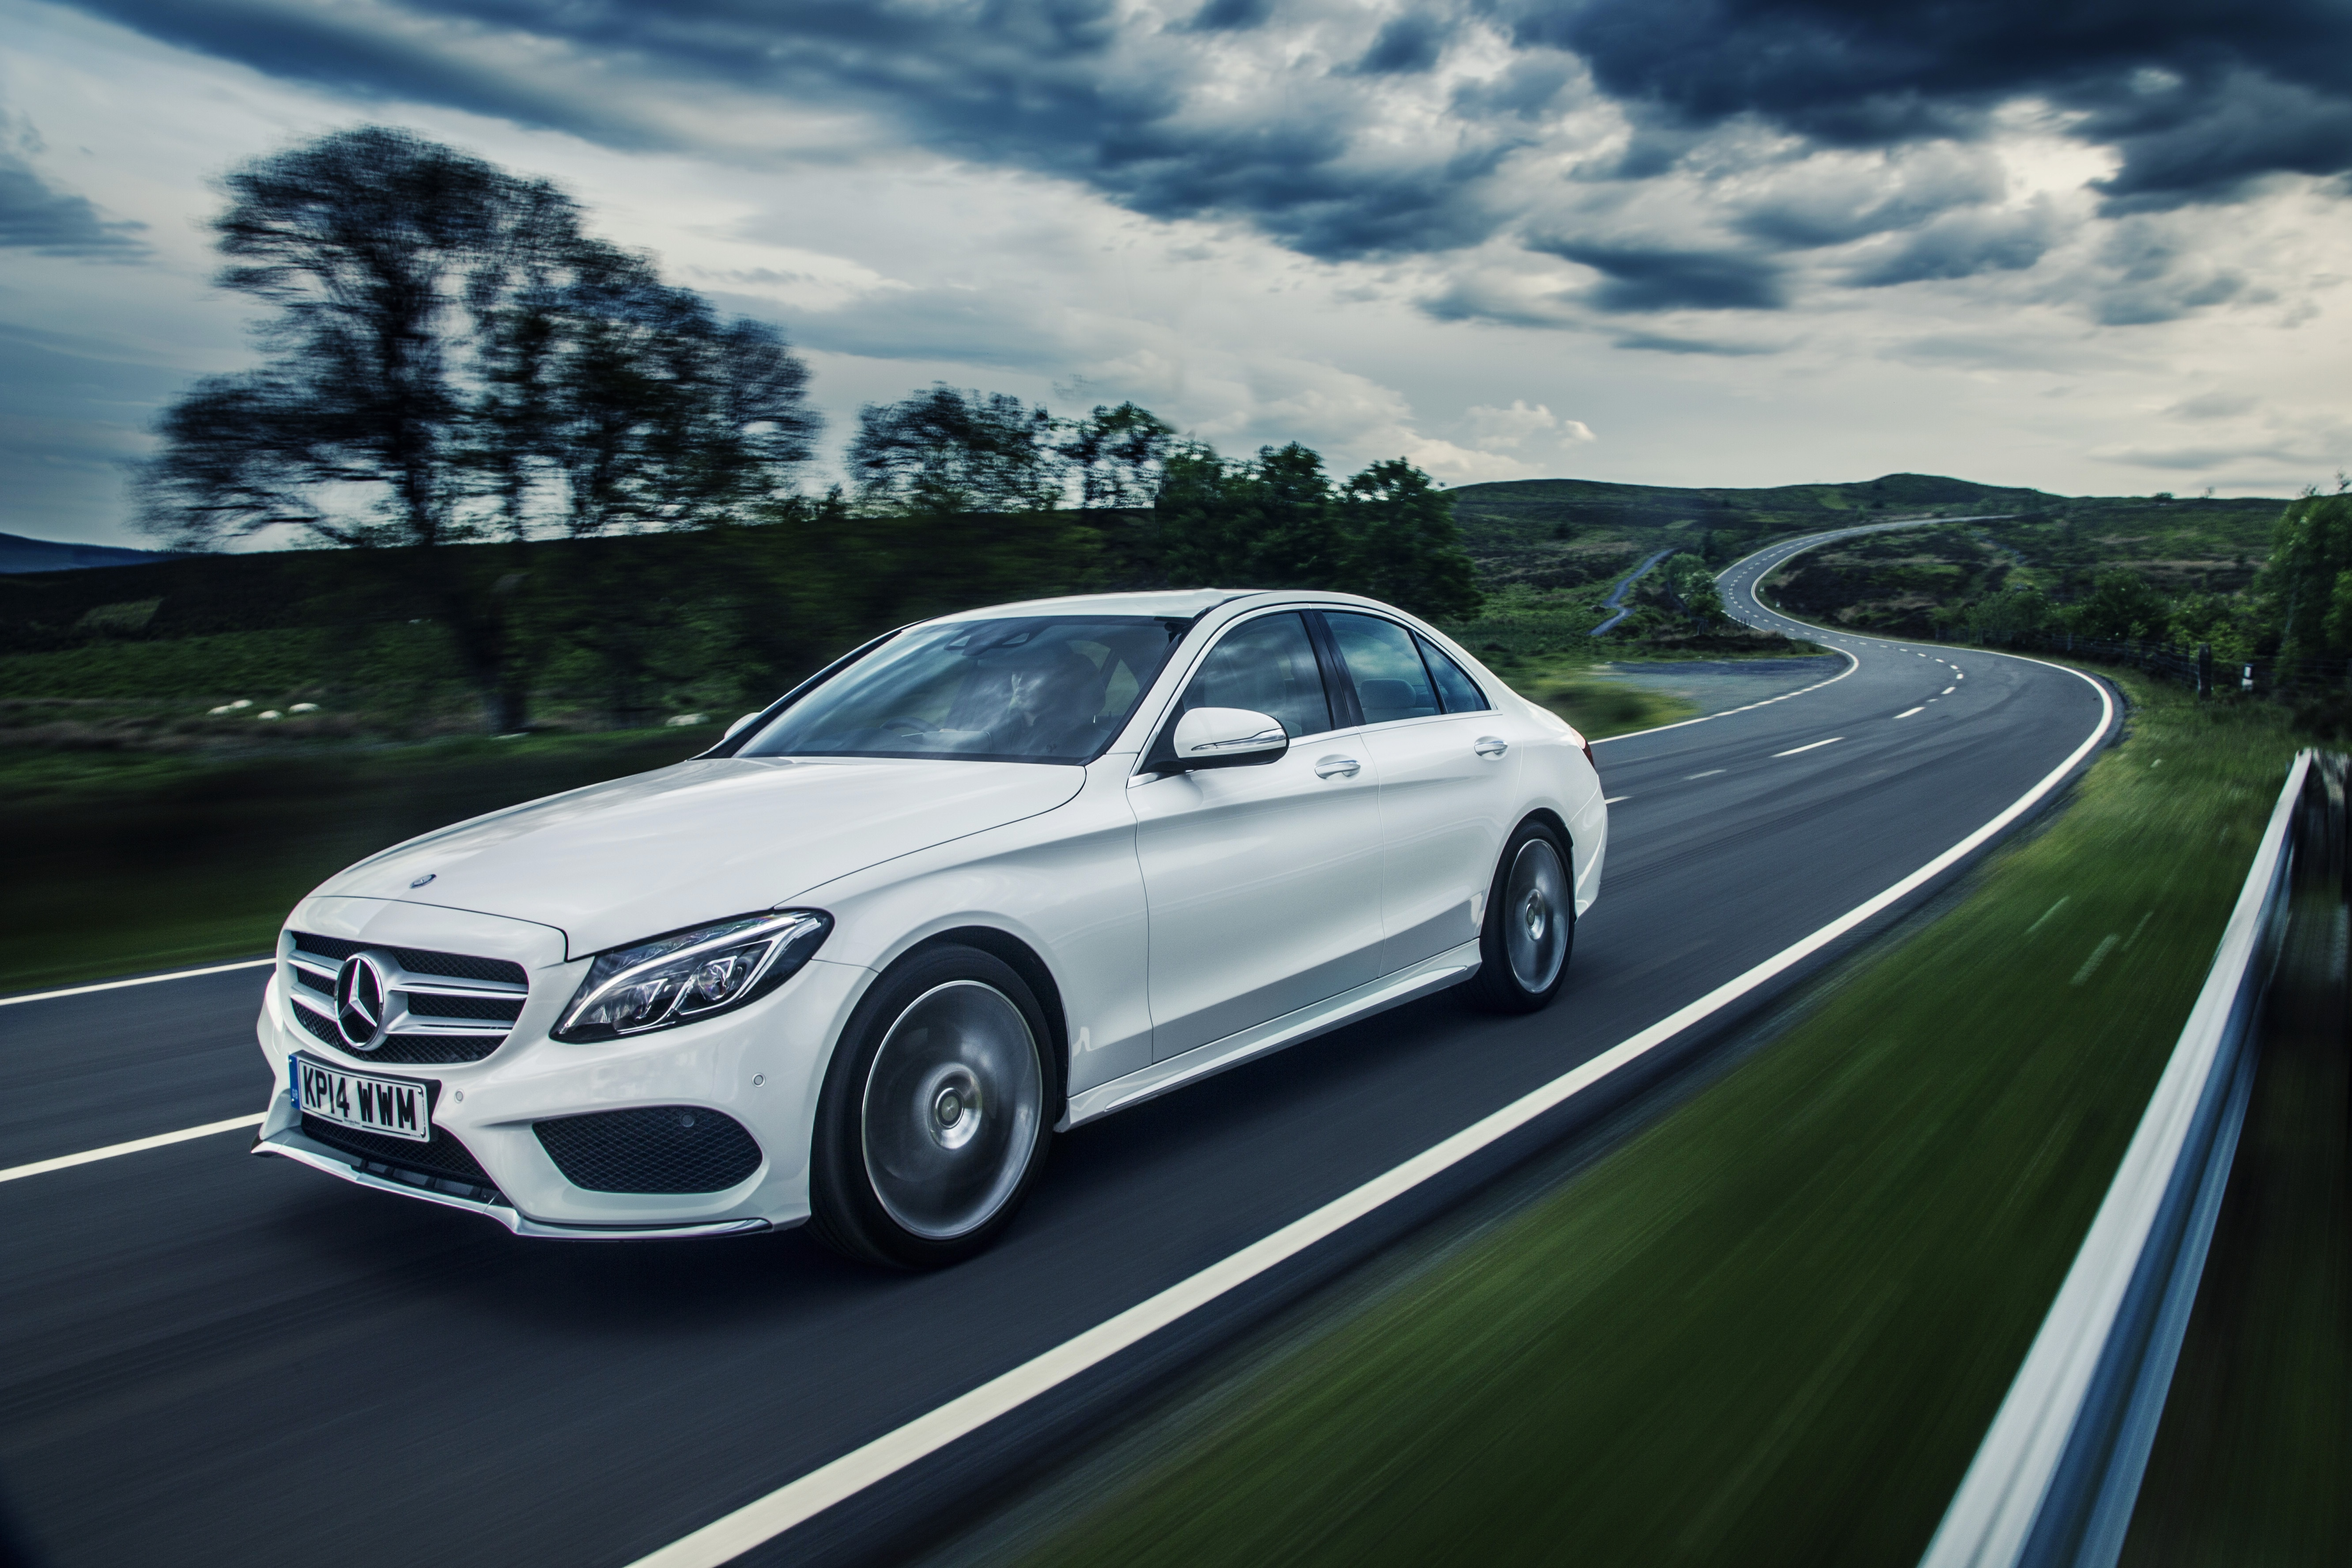 mercedes c class wins world car of the year 2015. Black Bedroom Furniture Sets. Home Design Ideas